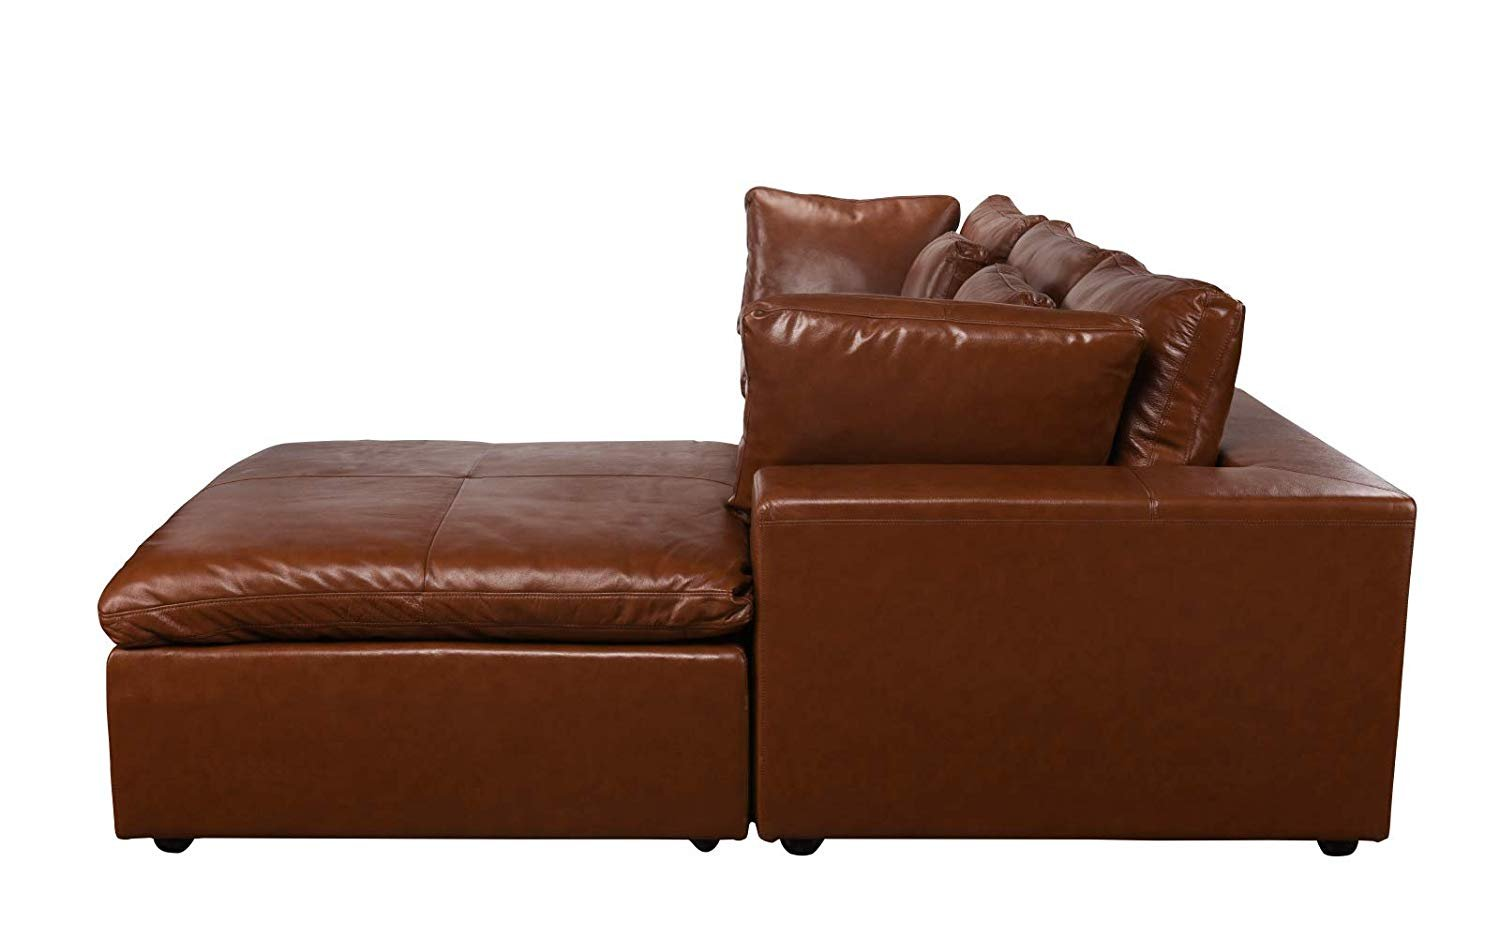 Leather Lounge Sectional Sofa, L Shape Couch with Wide ...